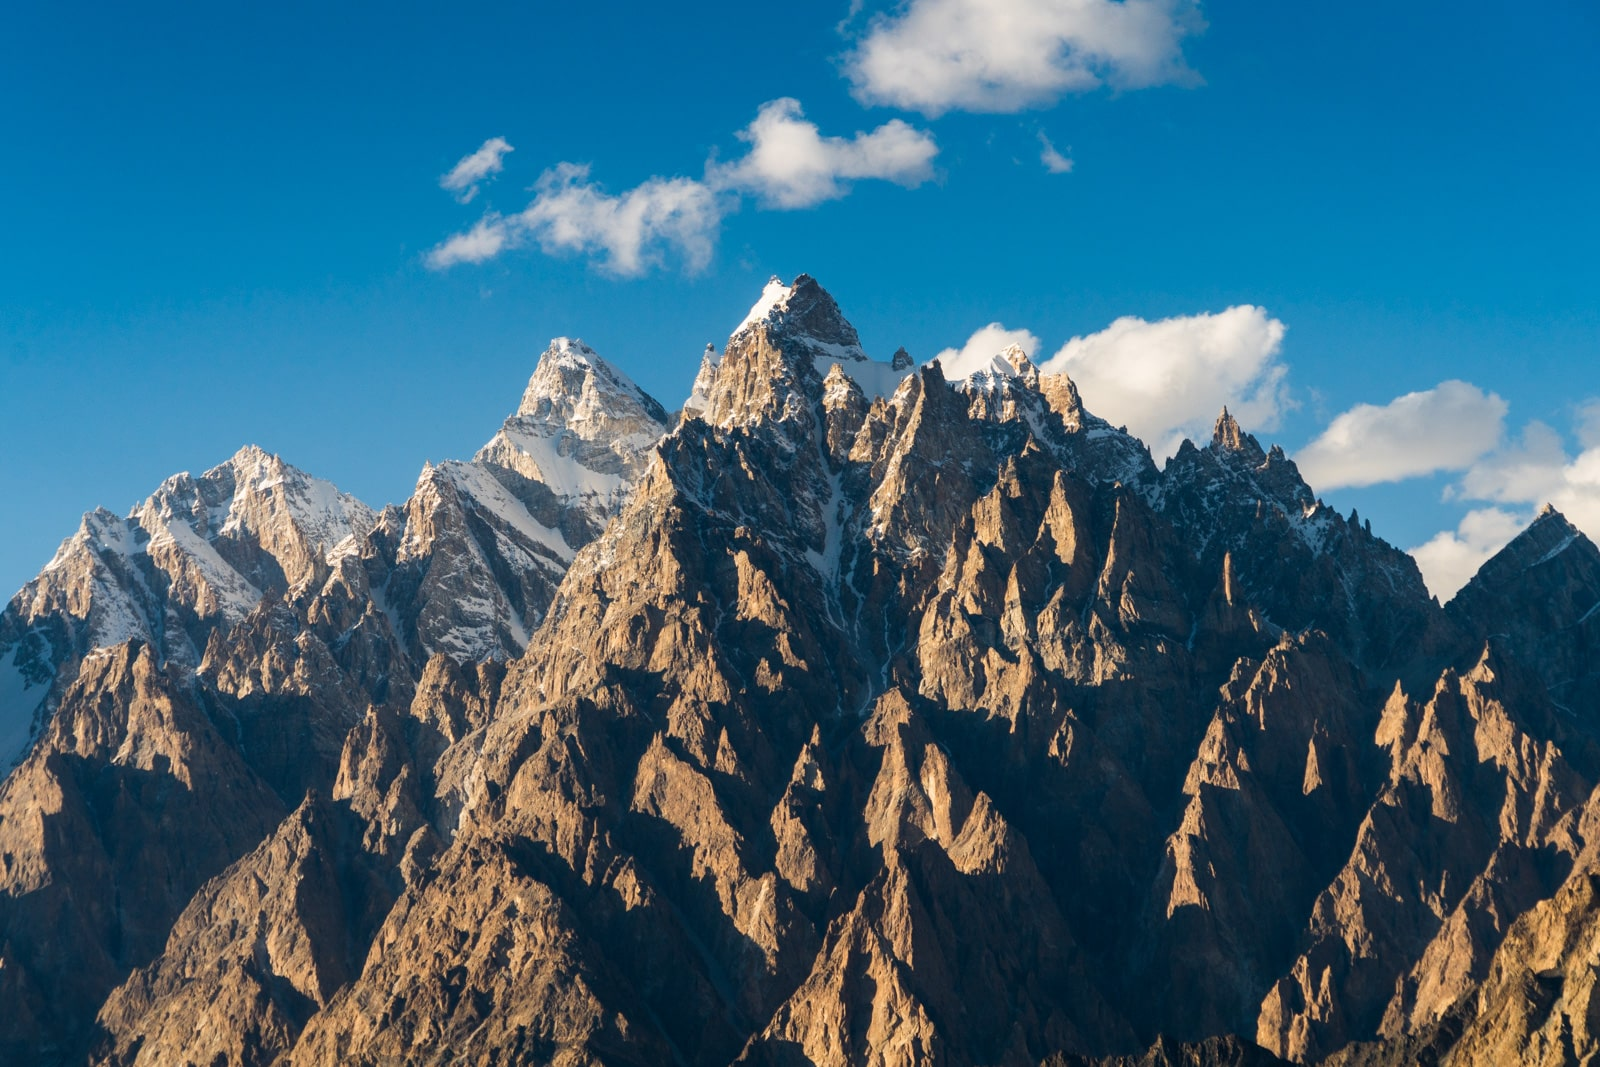 Homestay in Pakistan - Passu cones at sunset in Gilgit Baltistan - Lost With Purpose travel blog